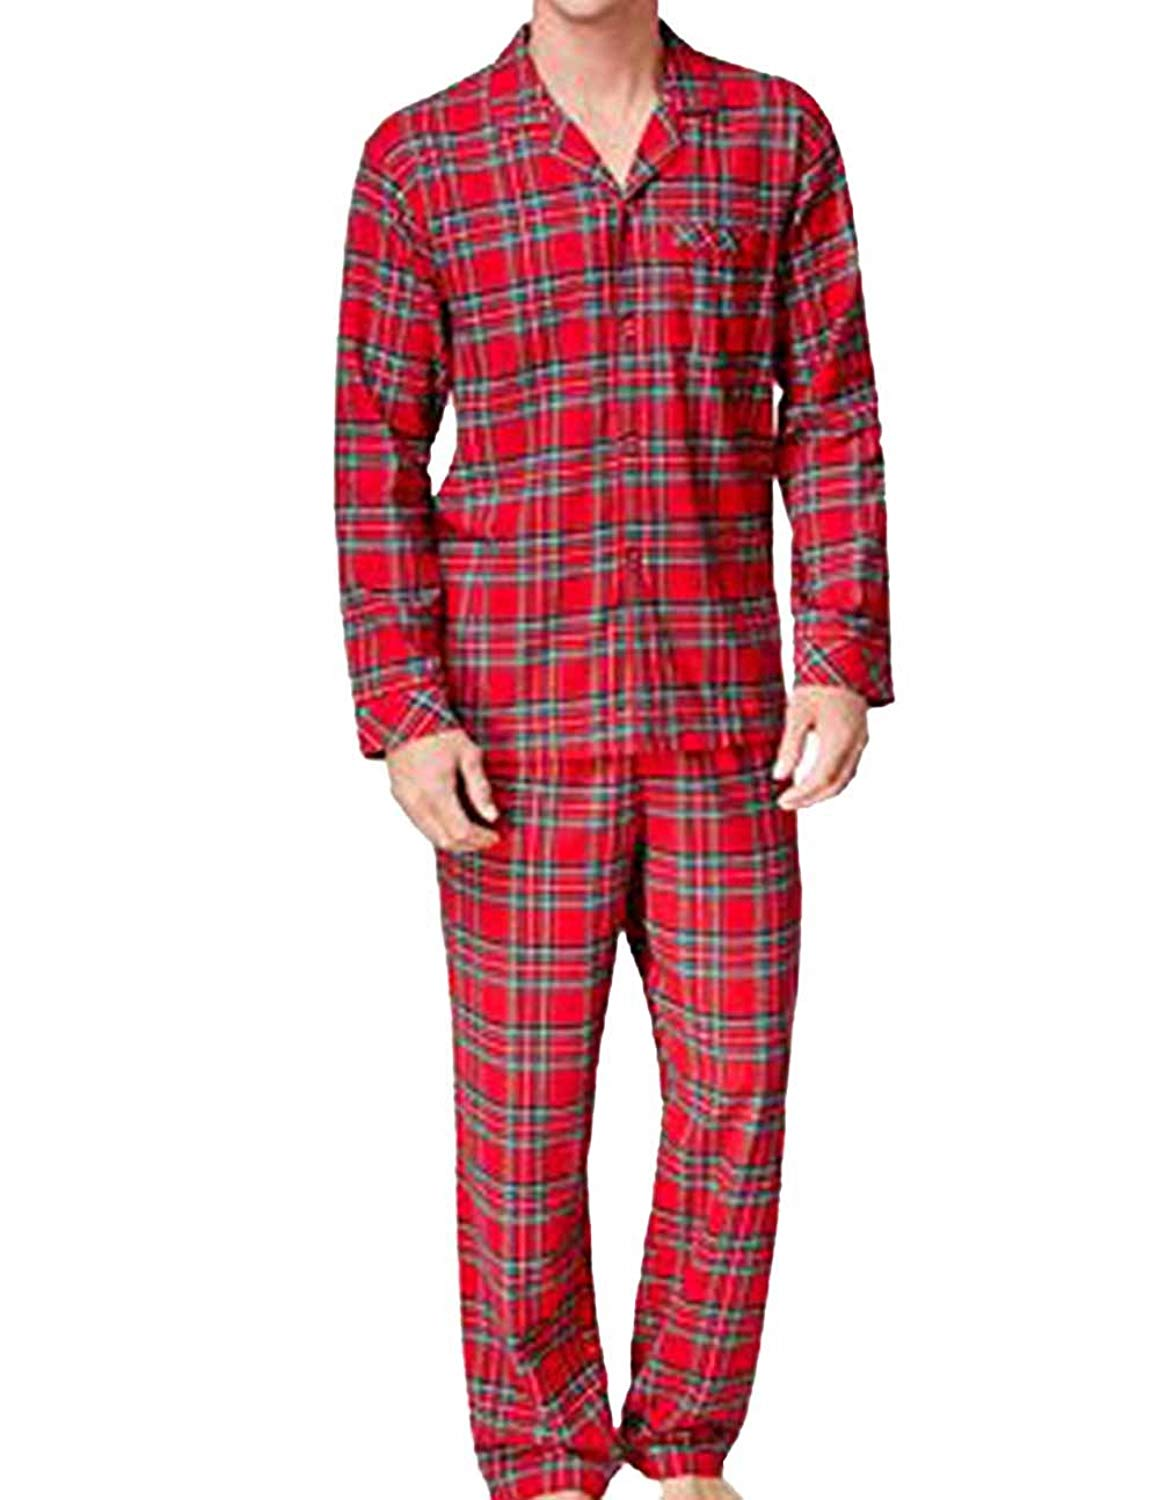 671f7a3c85 Get Quotations · FAMILY PJS-MMG Family Pajamas Family Pajamas Mens Brinkley  Brinkley Plaid S